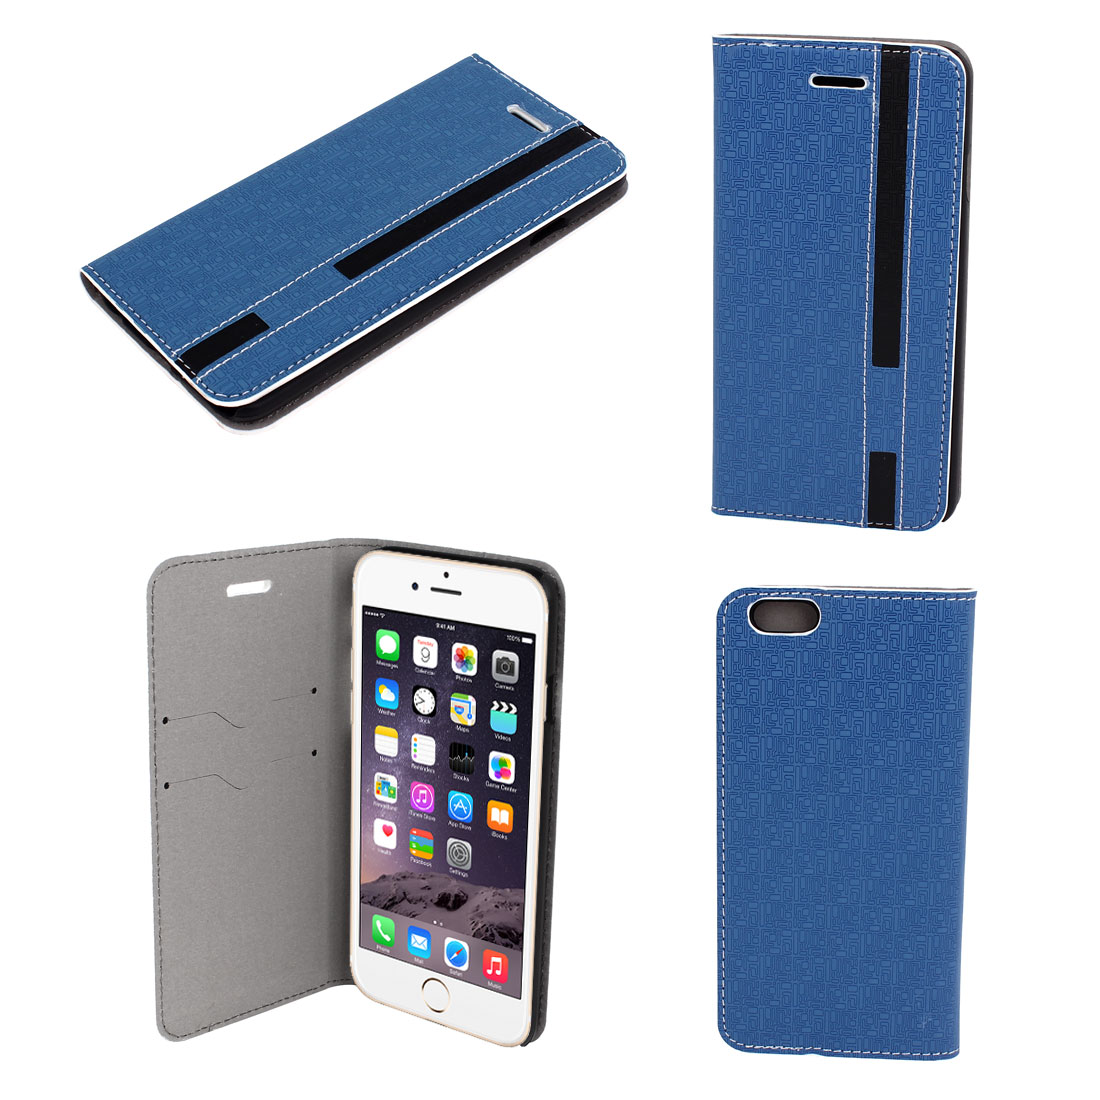 Blue Faux Leather Flip Case Protector Cover for Apple iPhone 6 6G 6th 4.7""